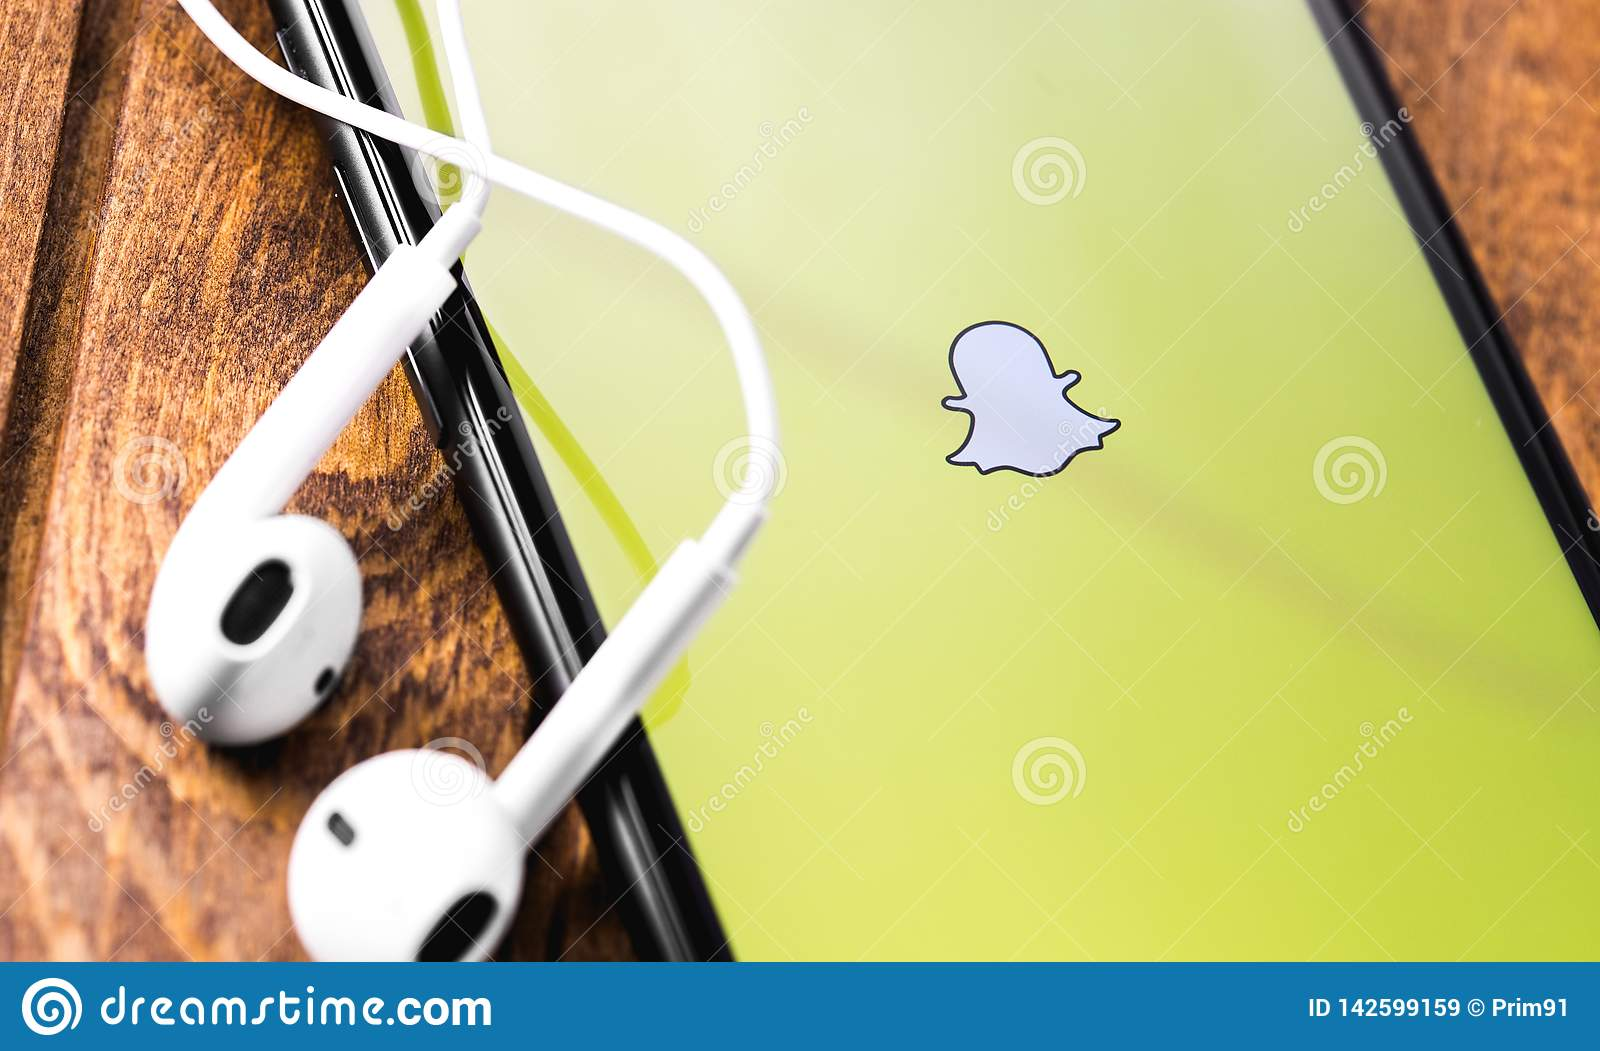 Snapchat Logo On The Screen Apple IPhone Editorial Stock